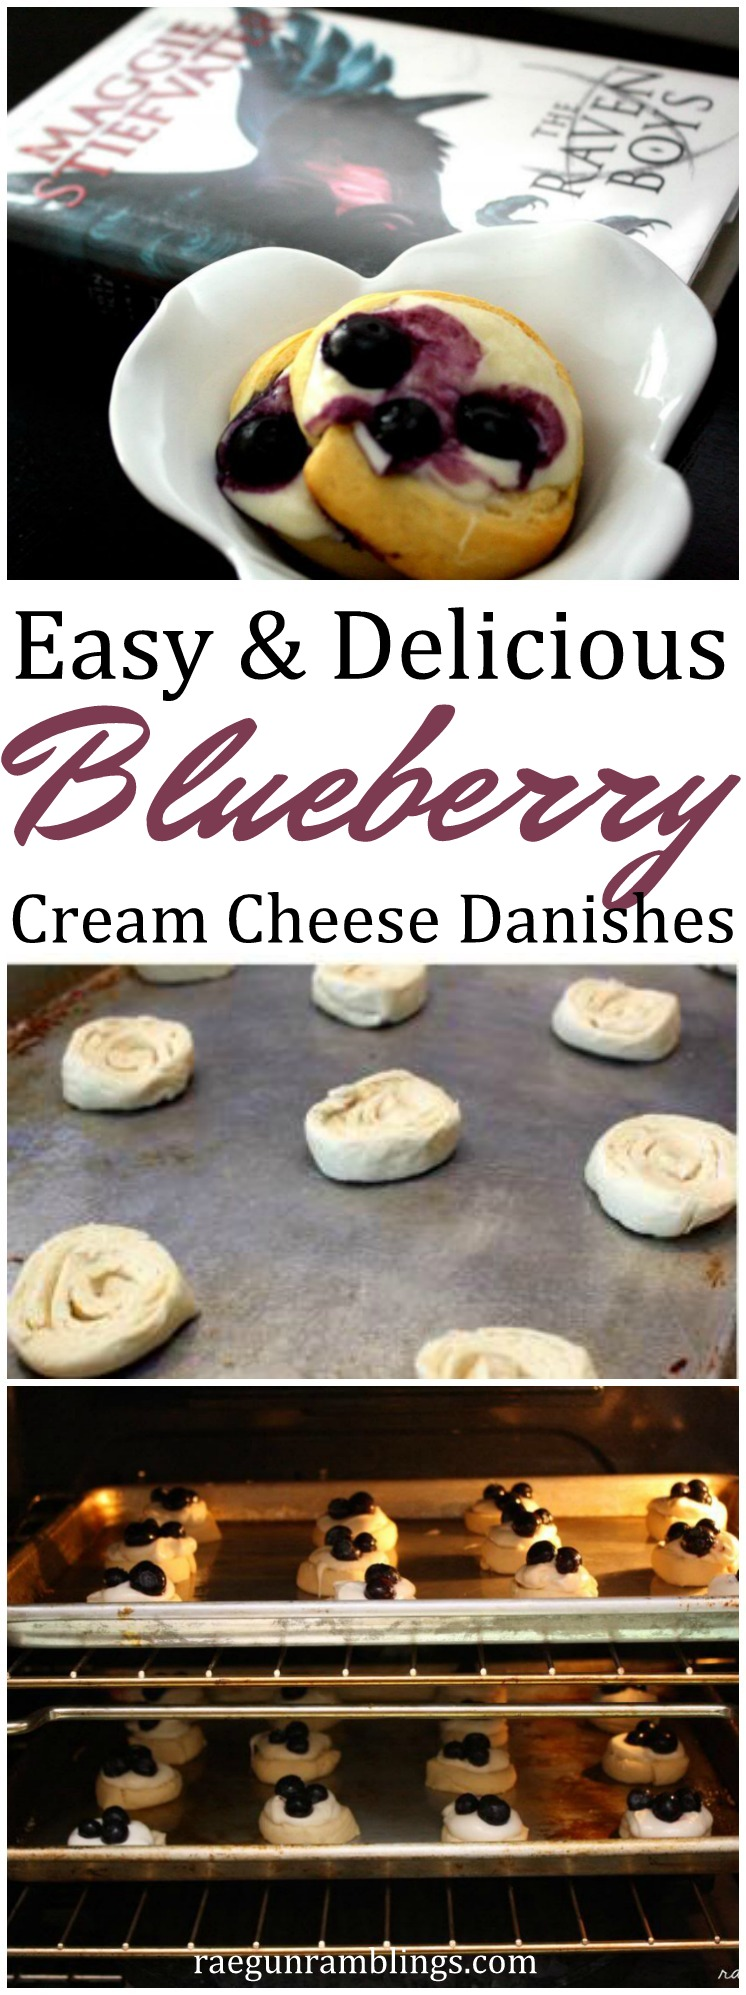 Made this the last 2 weekends. Super easy blueberry cream cheese danish recipe. Great for brunch or potlucks